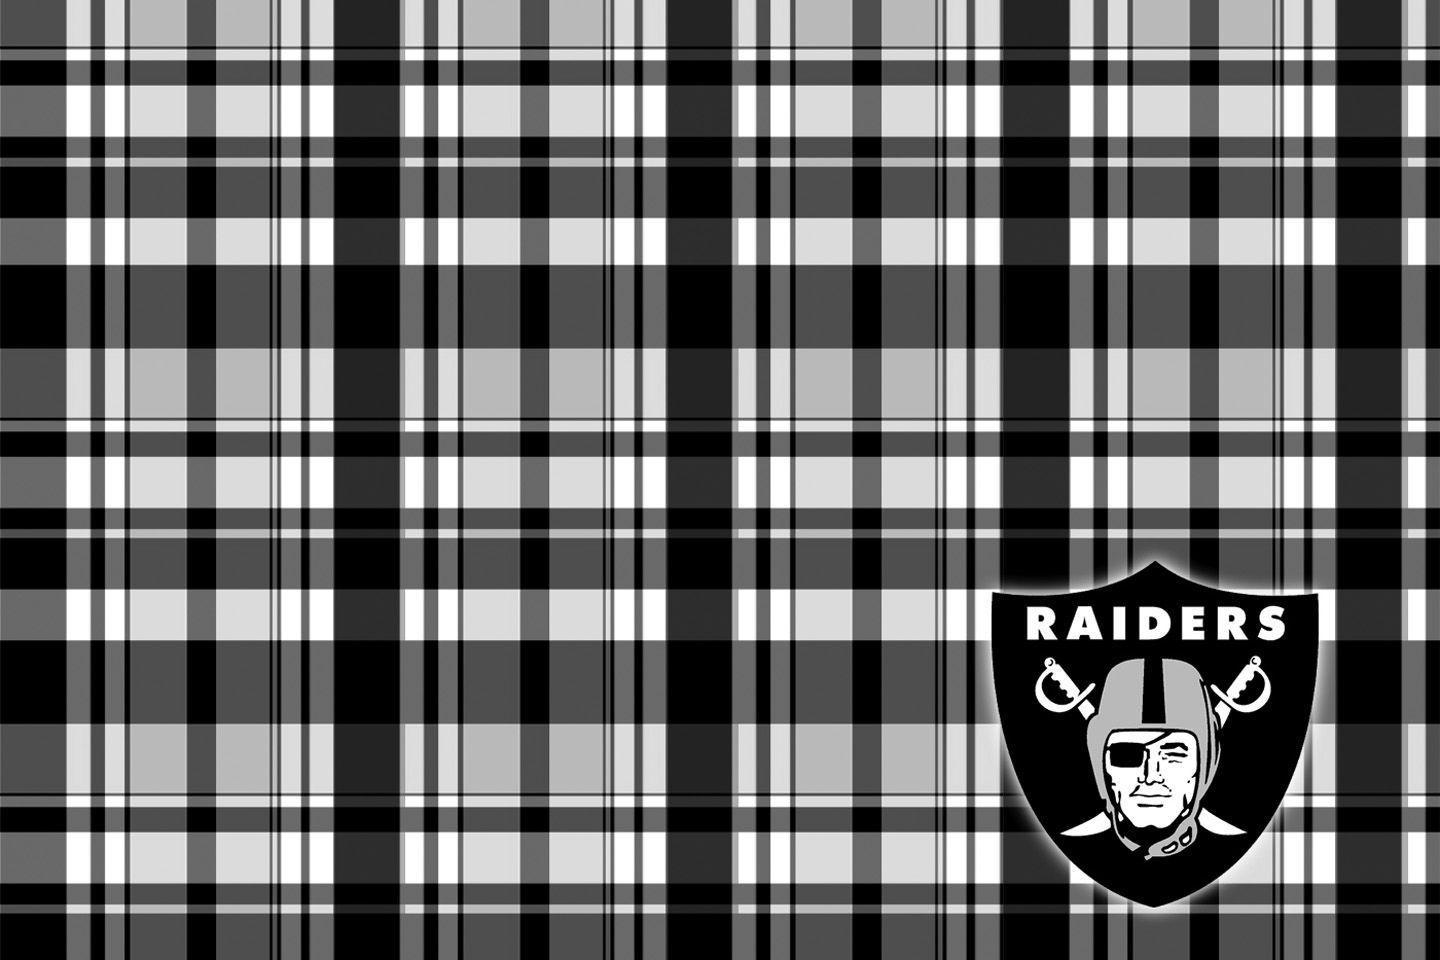 Oakland Raiders wallpapers | Oakland Raiders background - Page 2